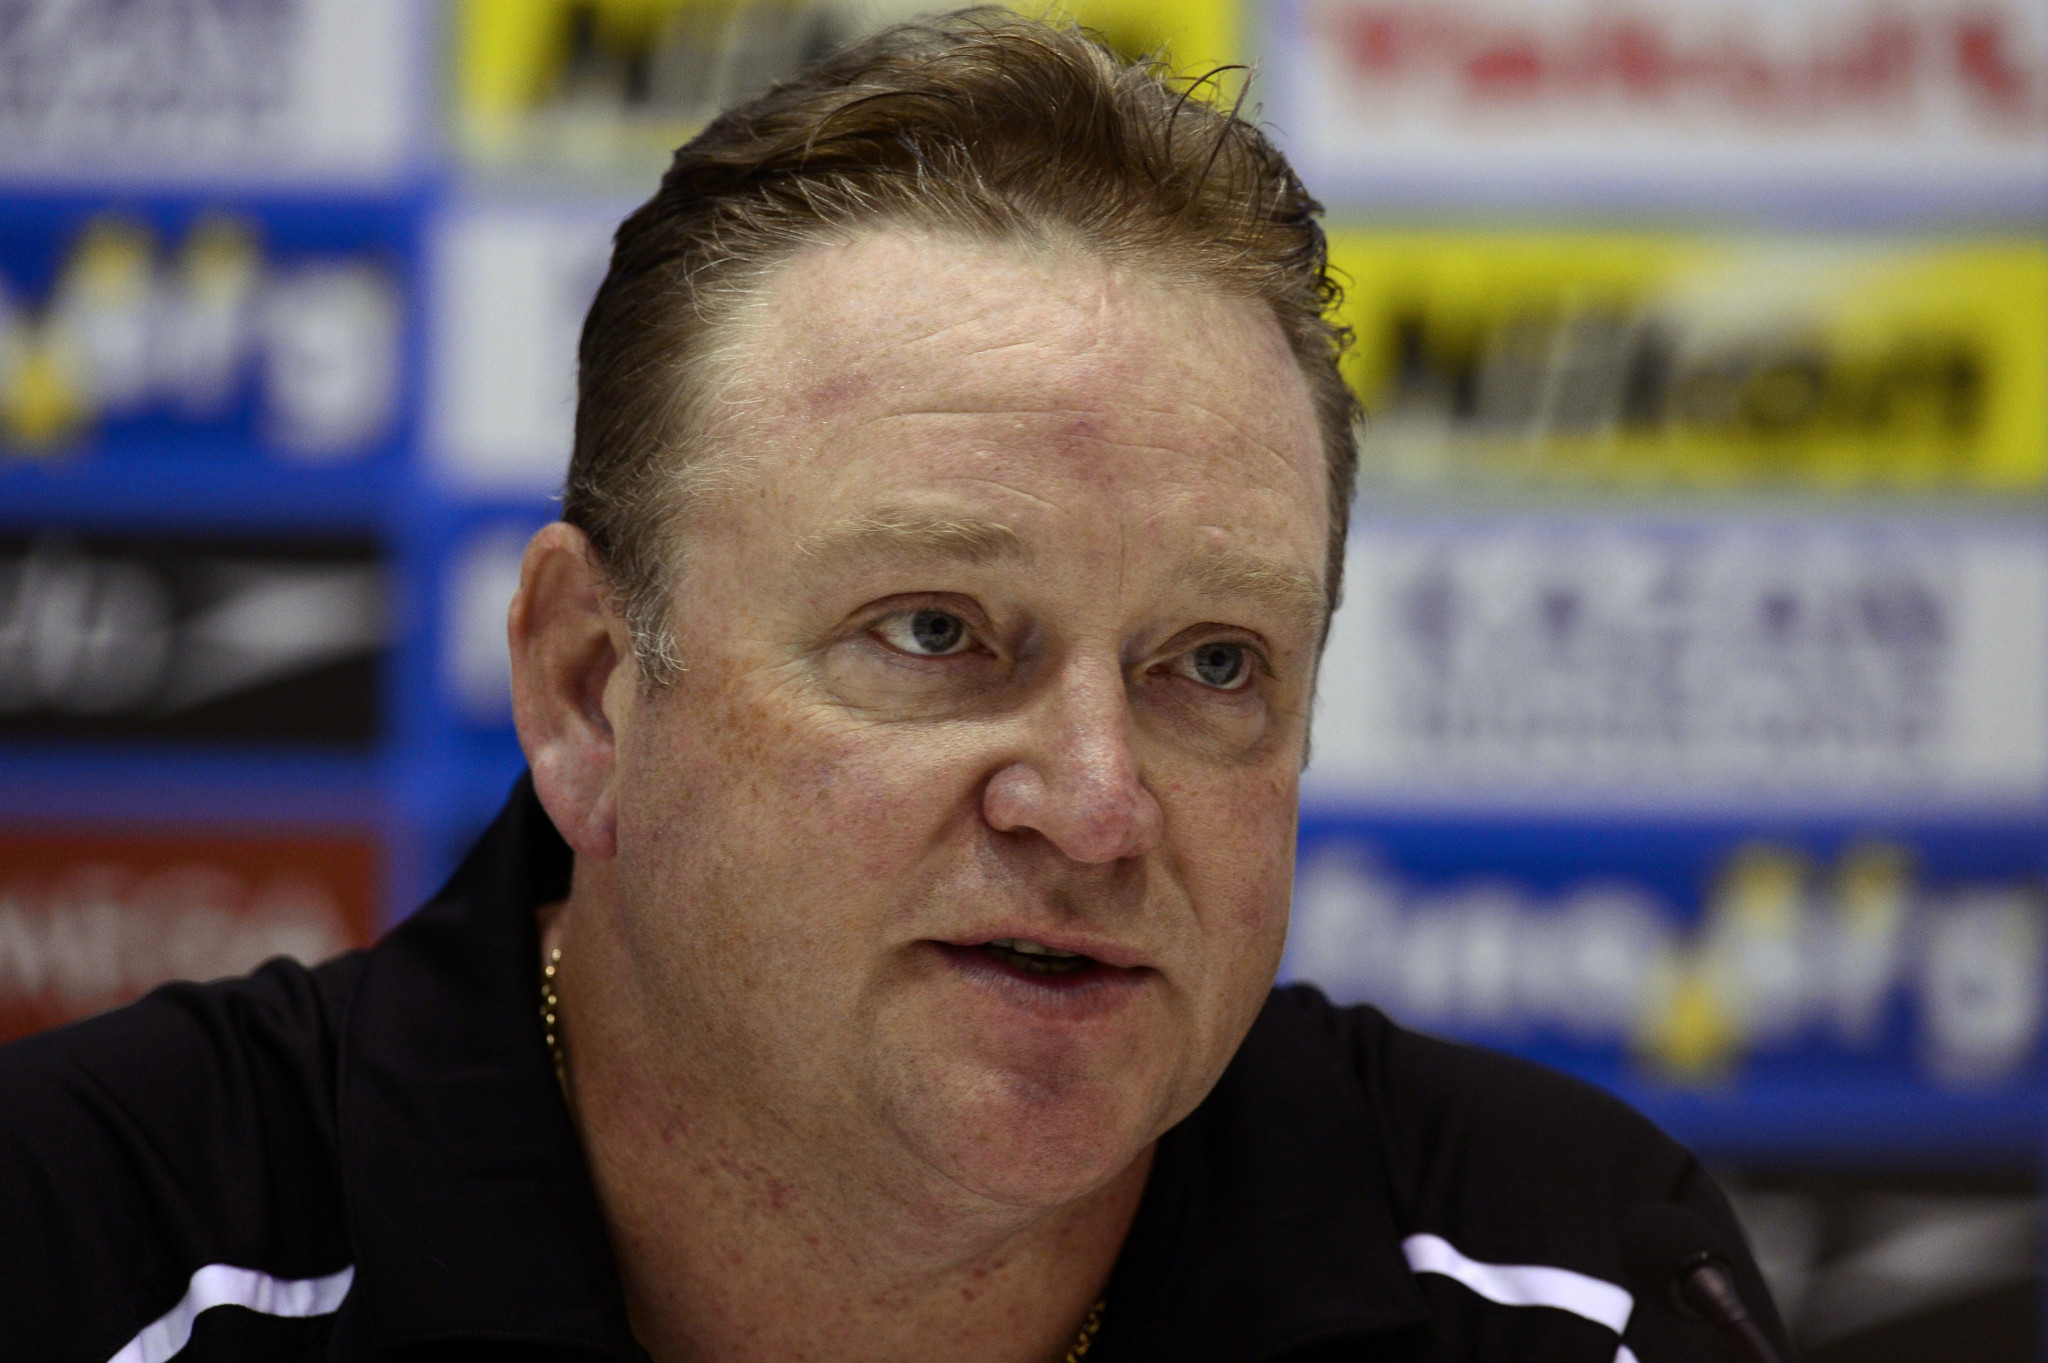 Swimming Canada high performance director John Atkinson suggested Olympic trials would be